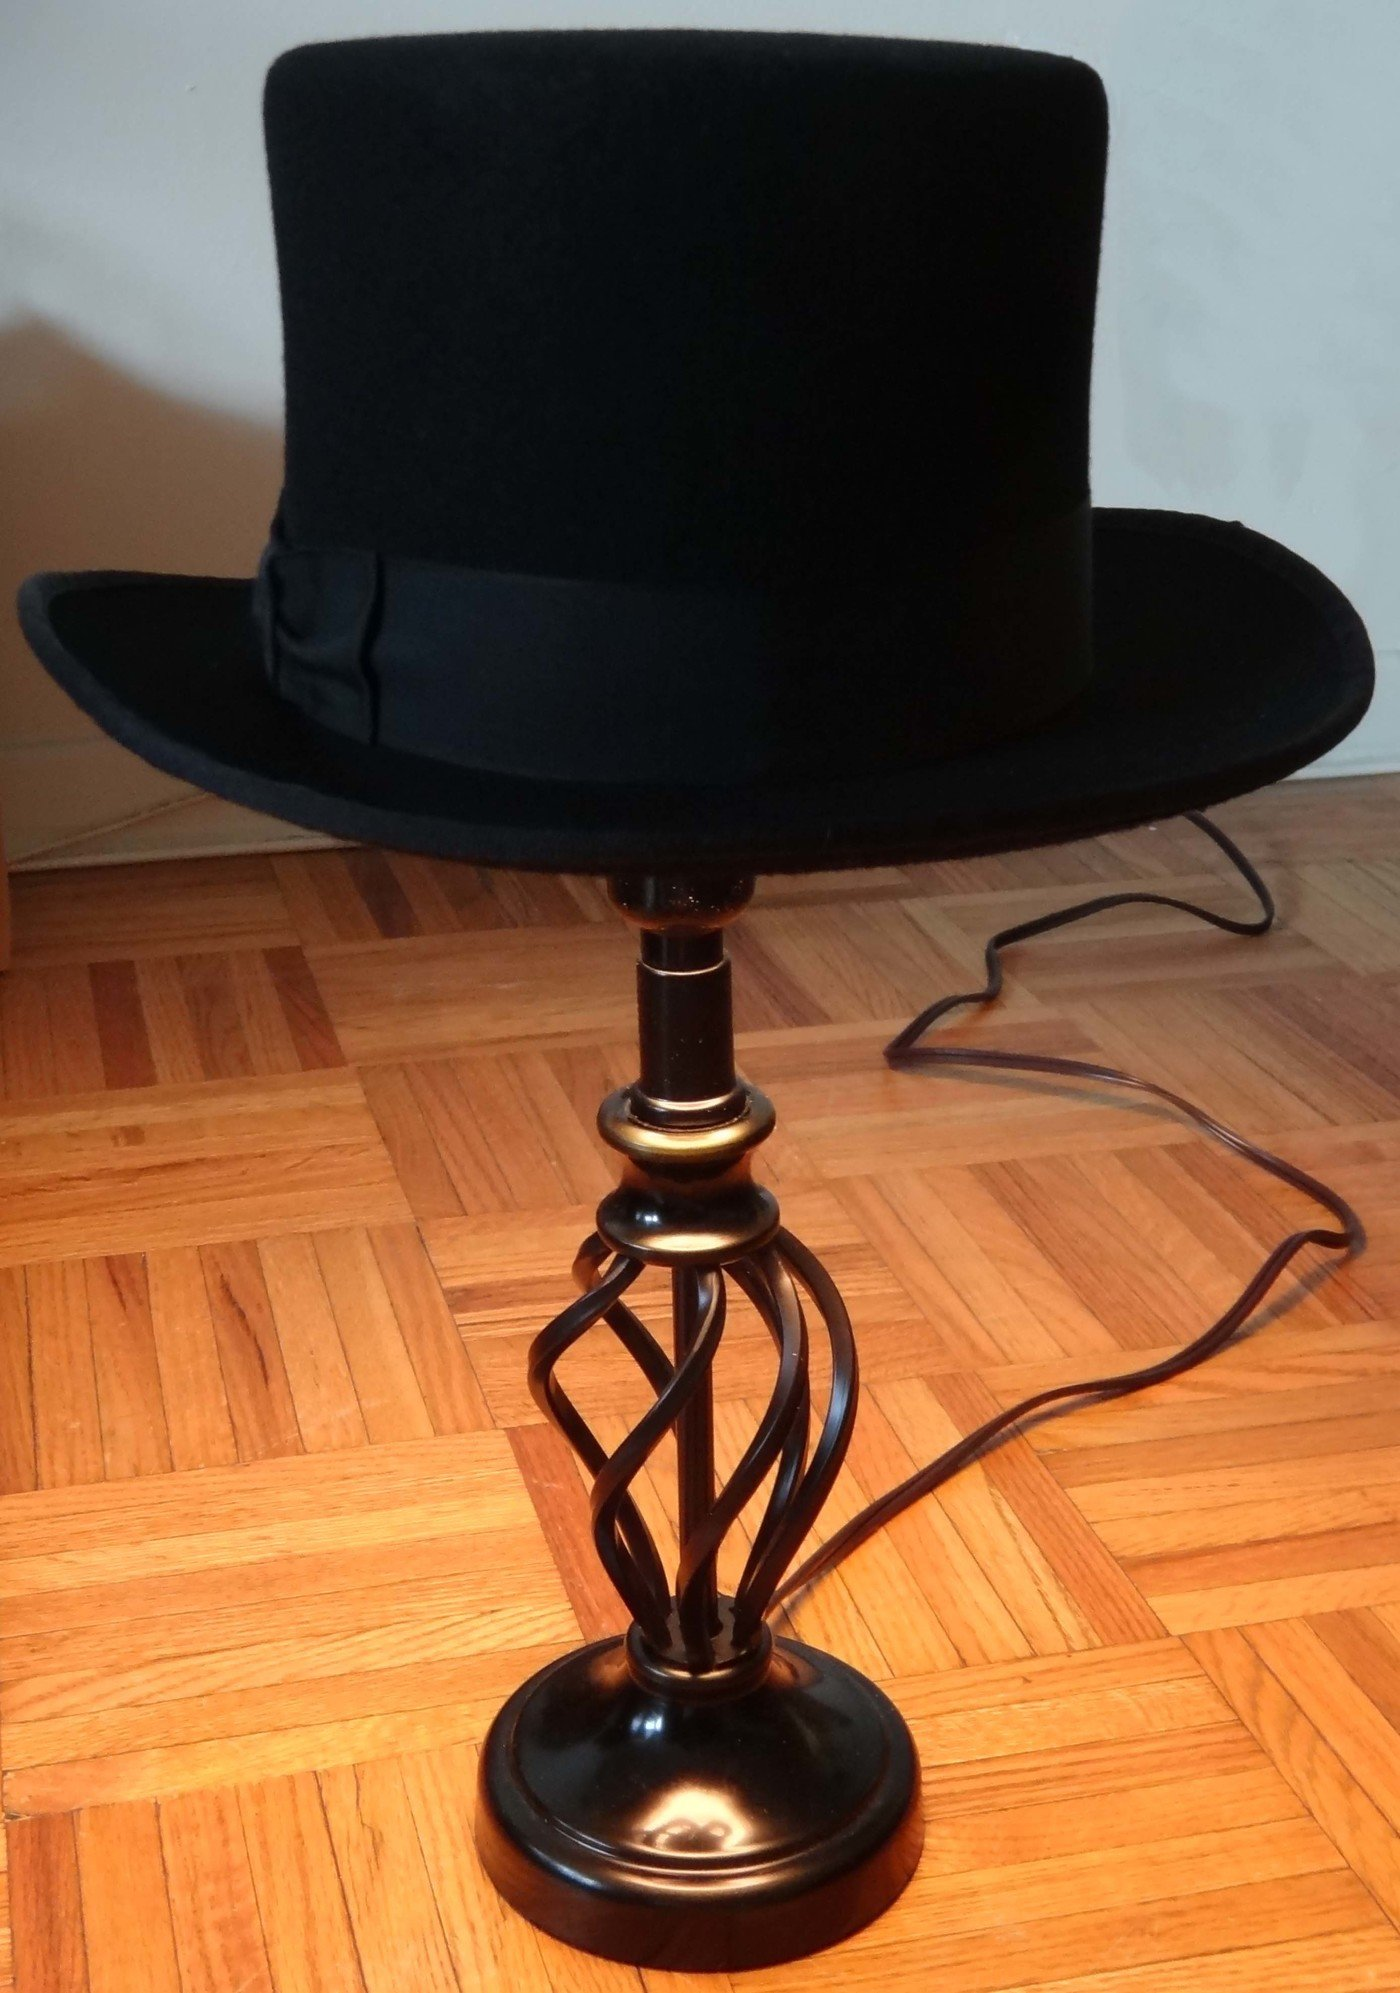 Top hat lamp by steven l at coroflot mozeypictures Images